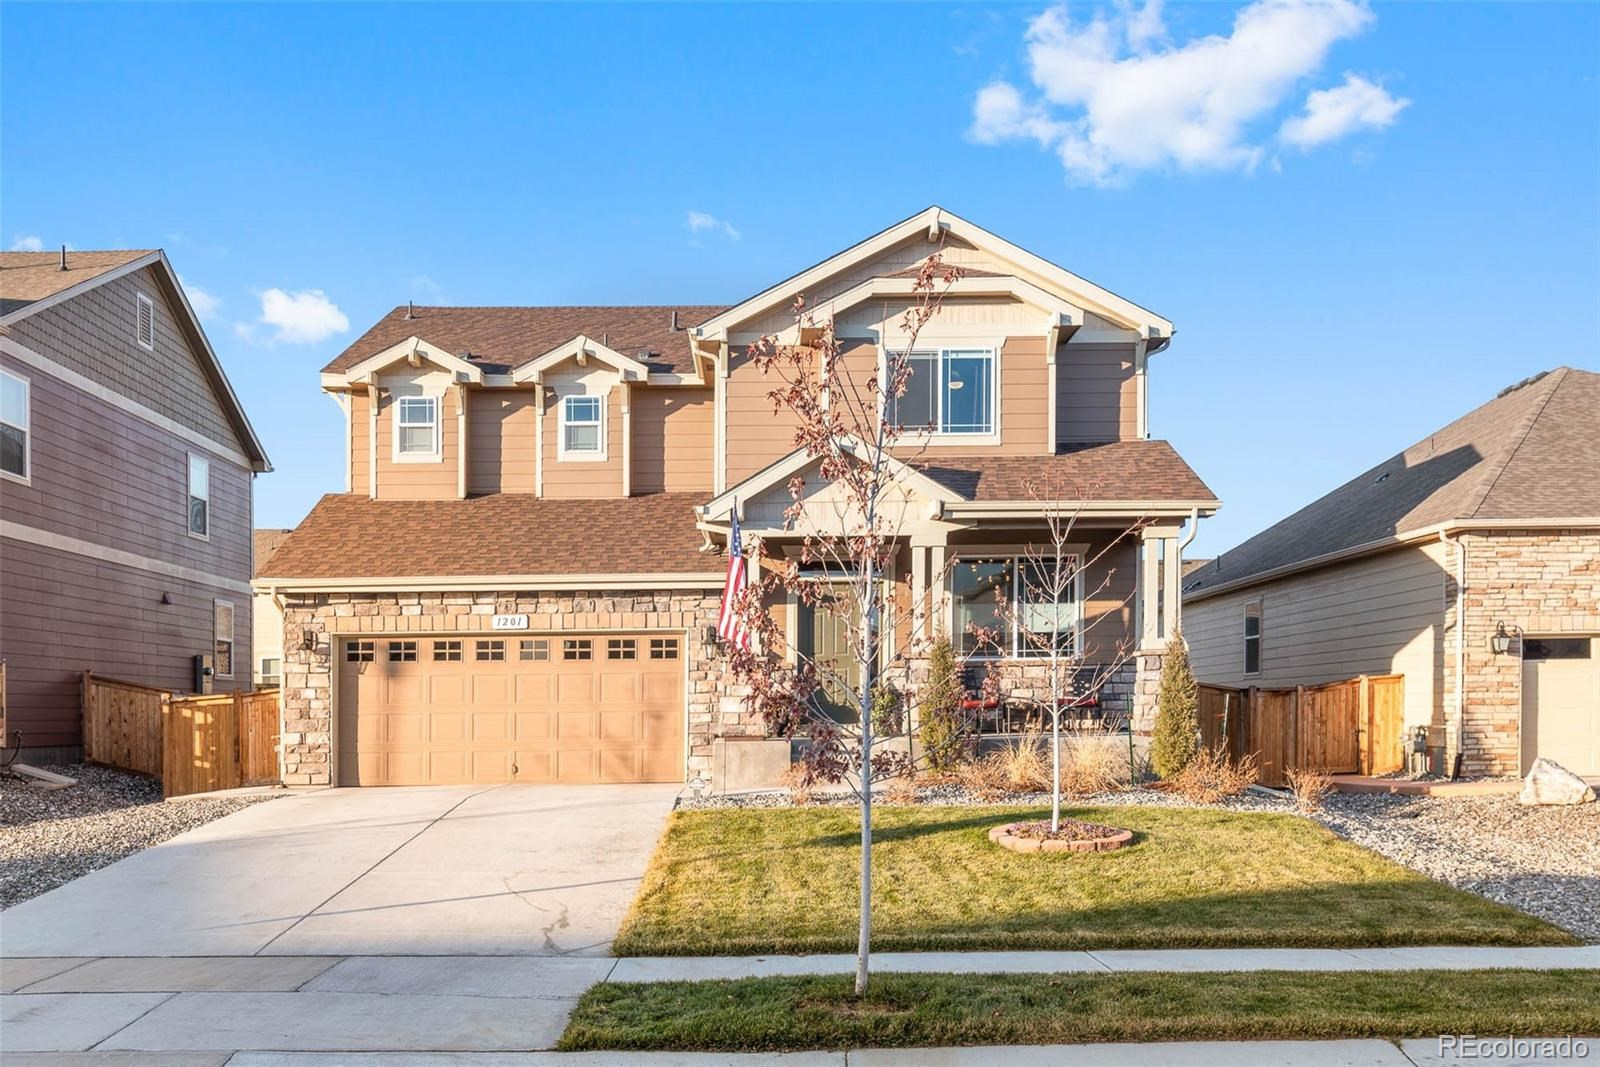 MLS# 8391649 - 2 - 1201 W 170th Avenue, Broomfield, CO 80023